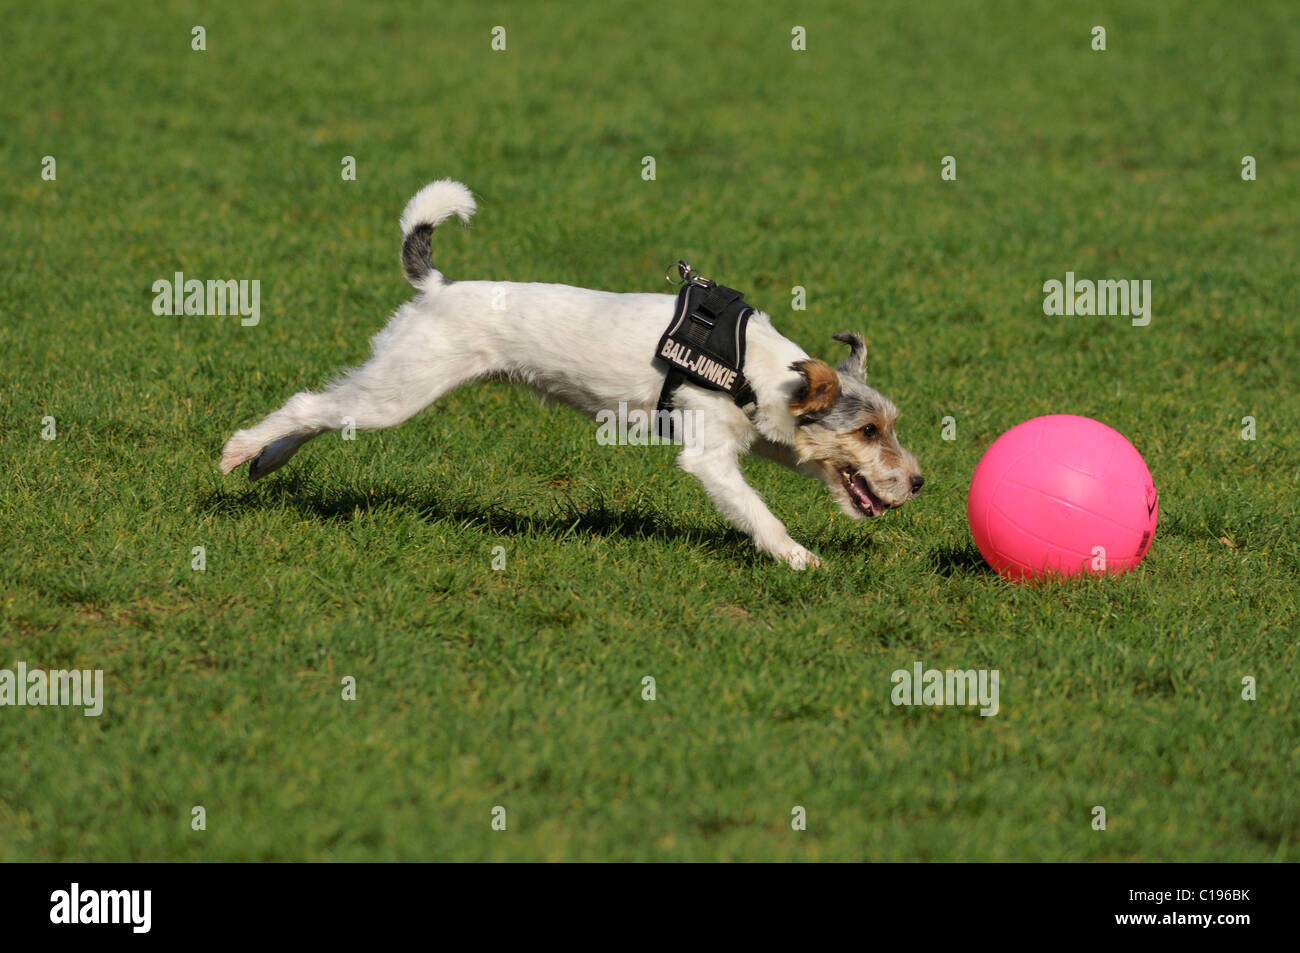 Terrier sprinting after his pink ball - Stock Image